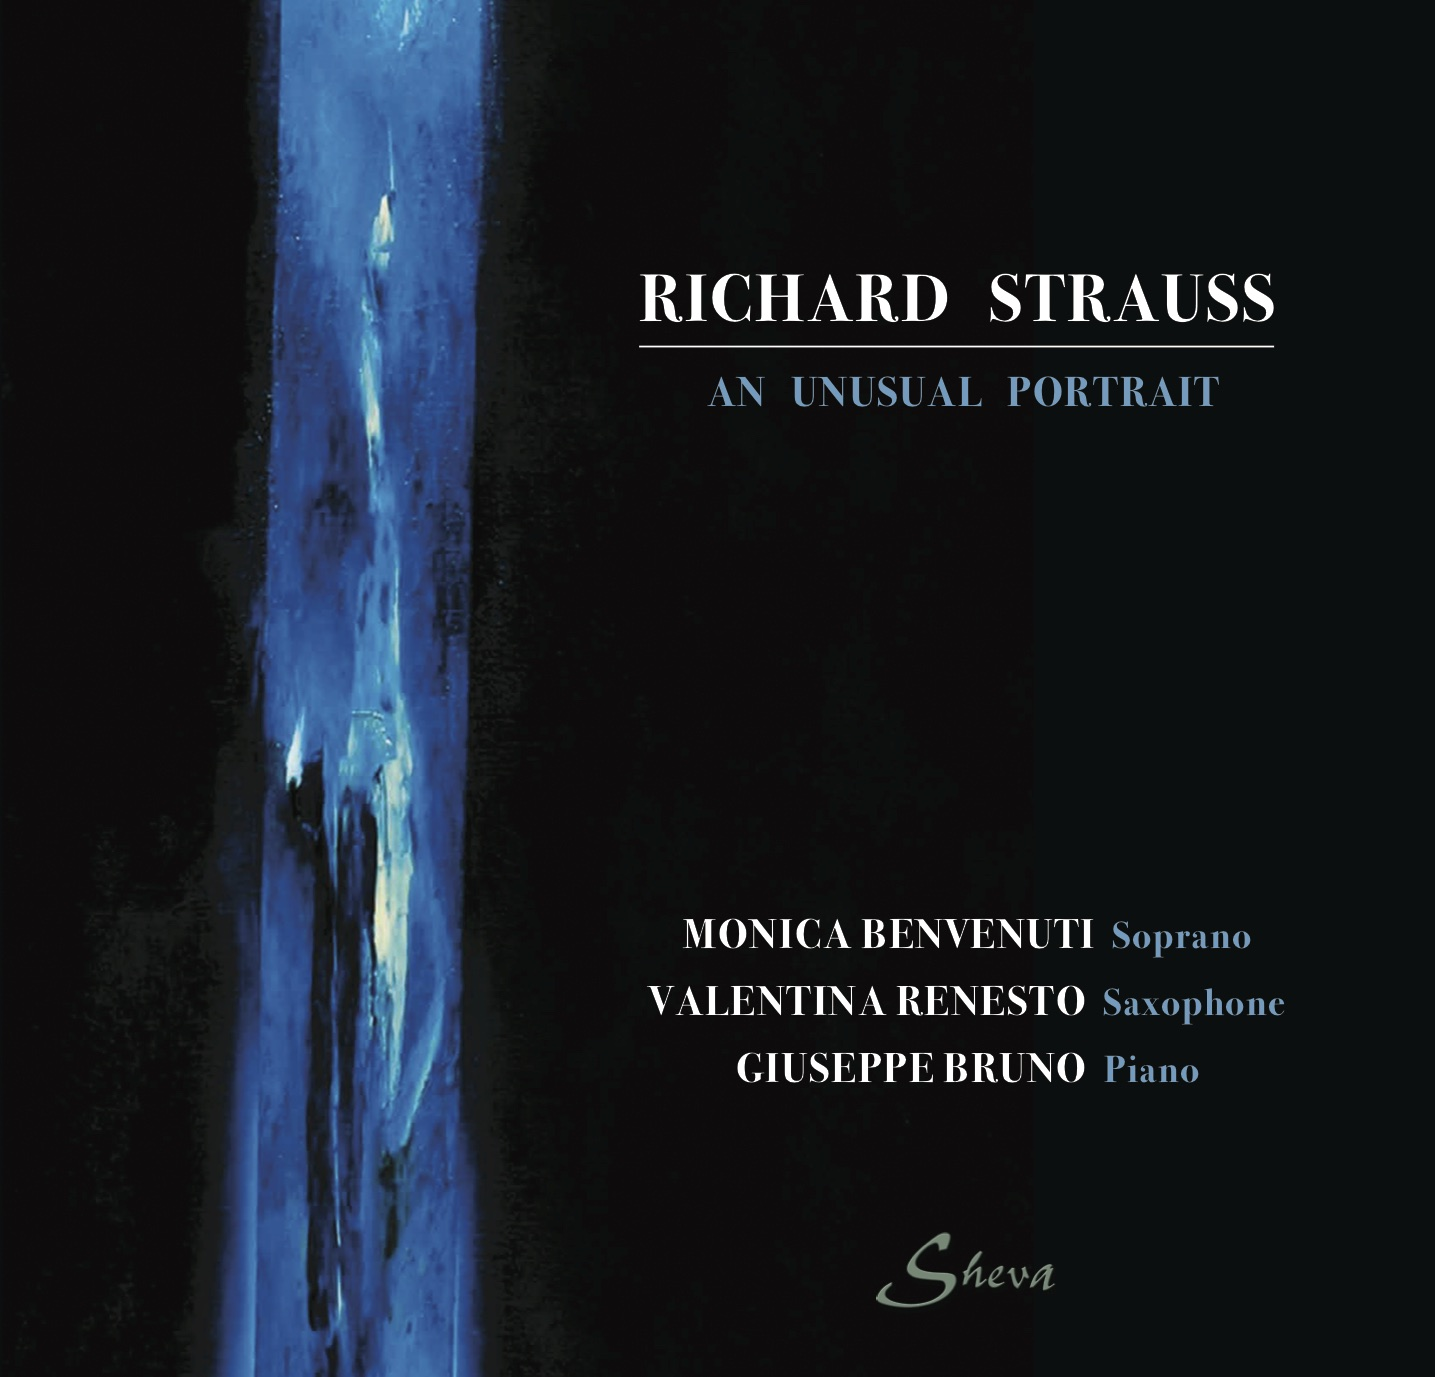 SHEVA 162 RICHARD STRAUSS An Unusual Portrait